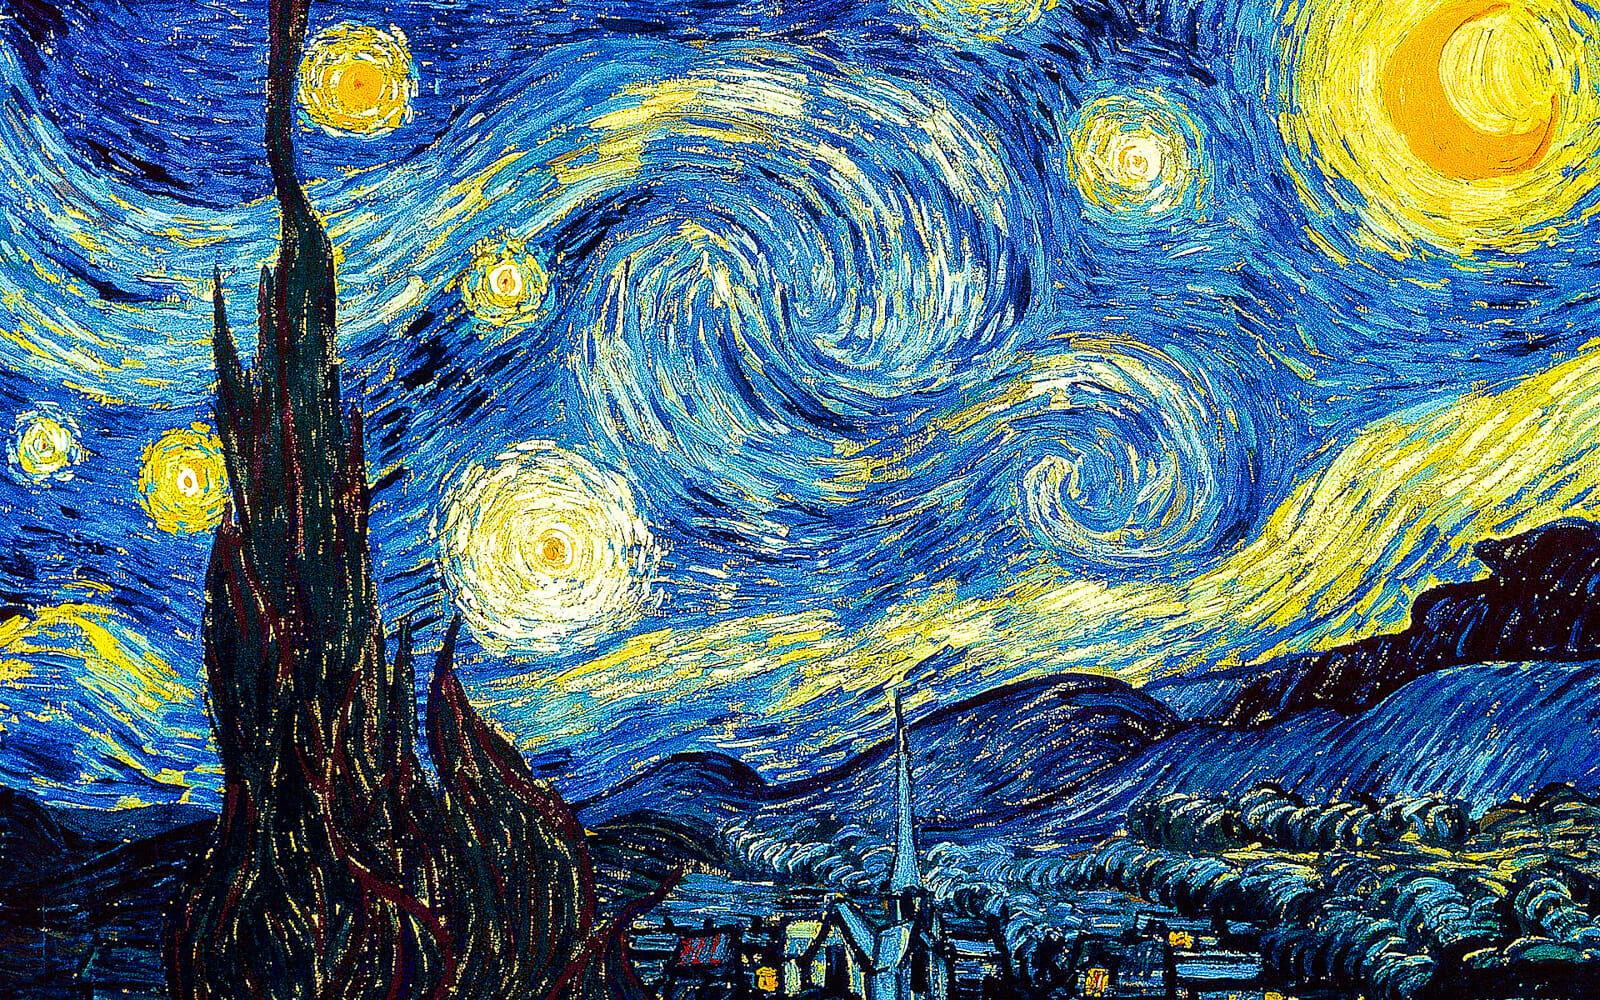 Starry Sky by Van Gogh